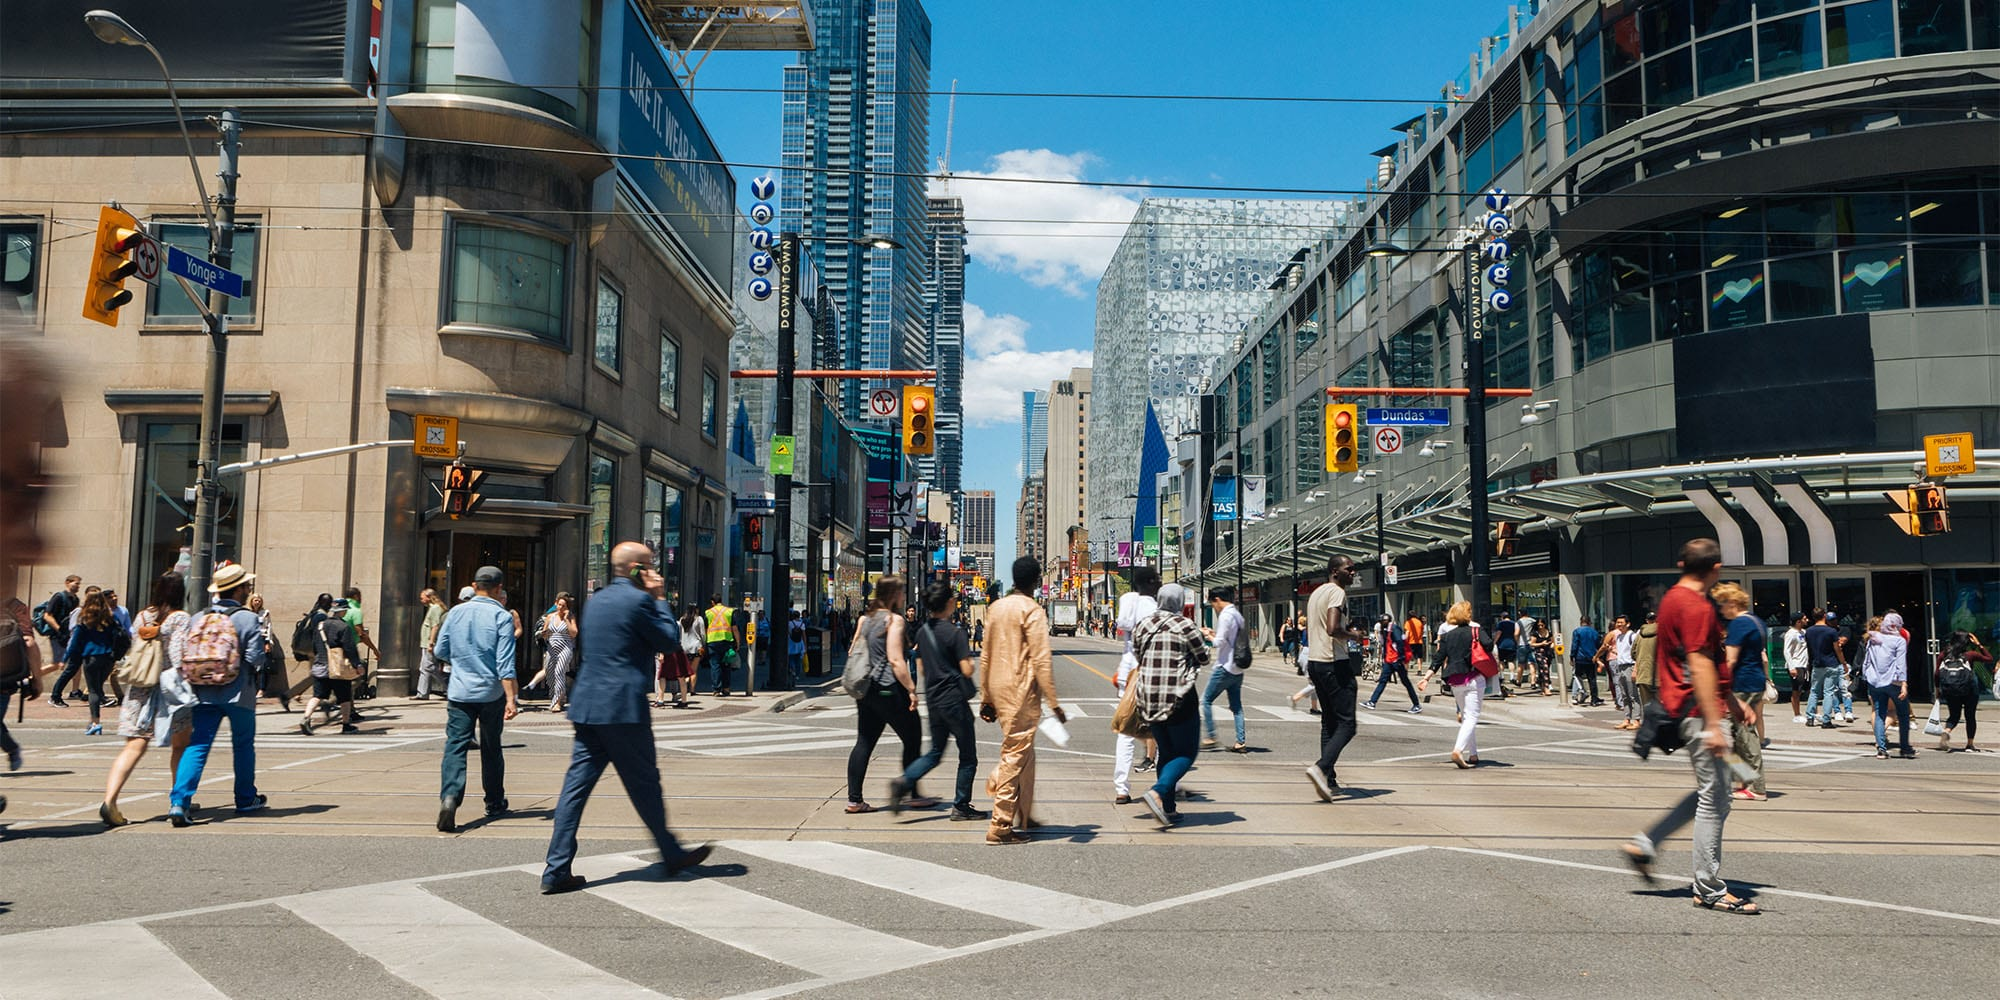 Canadian companies that are improving life in the city